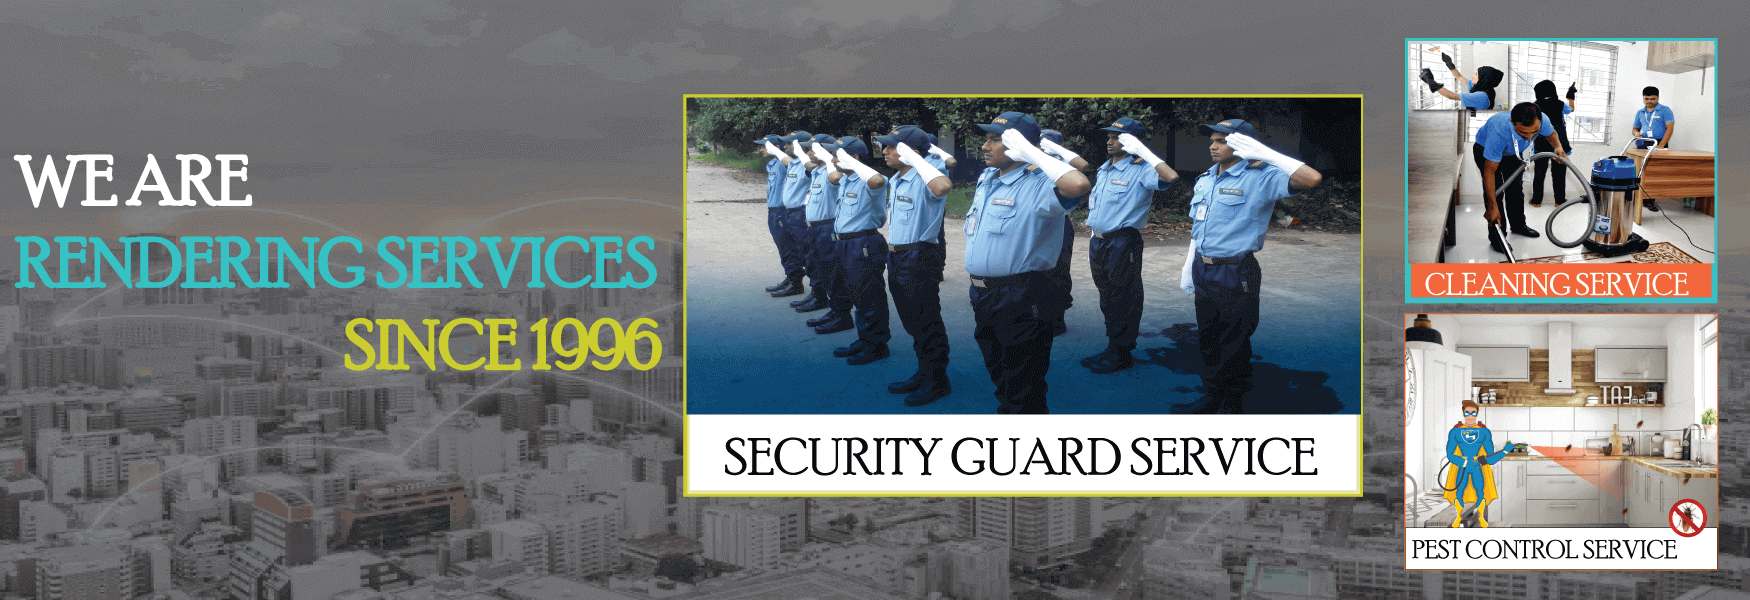 Security-Guard Slider 01